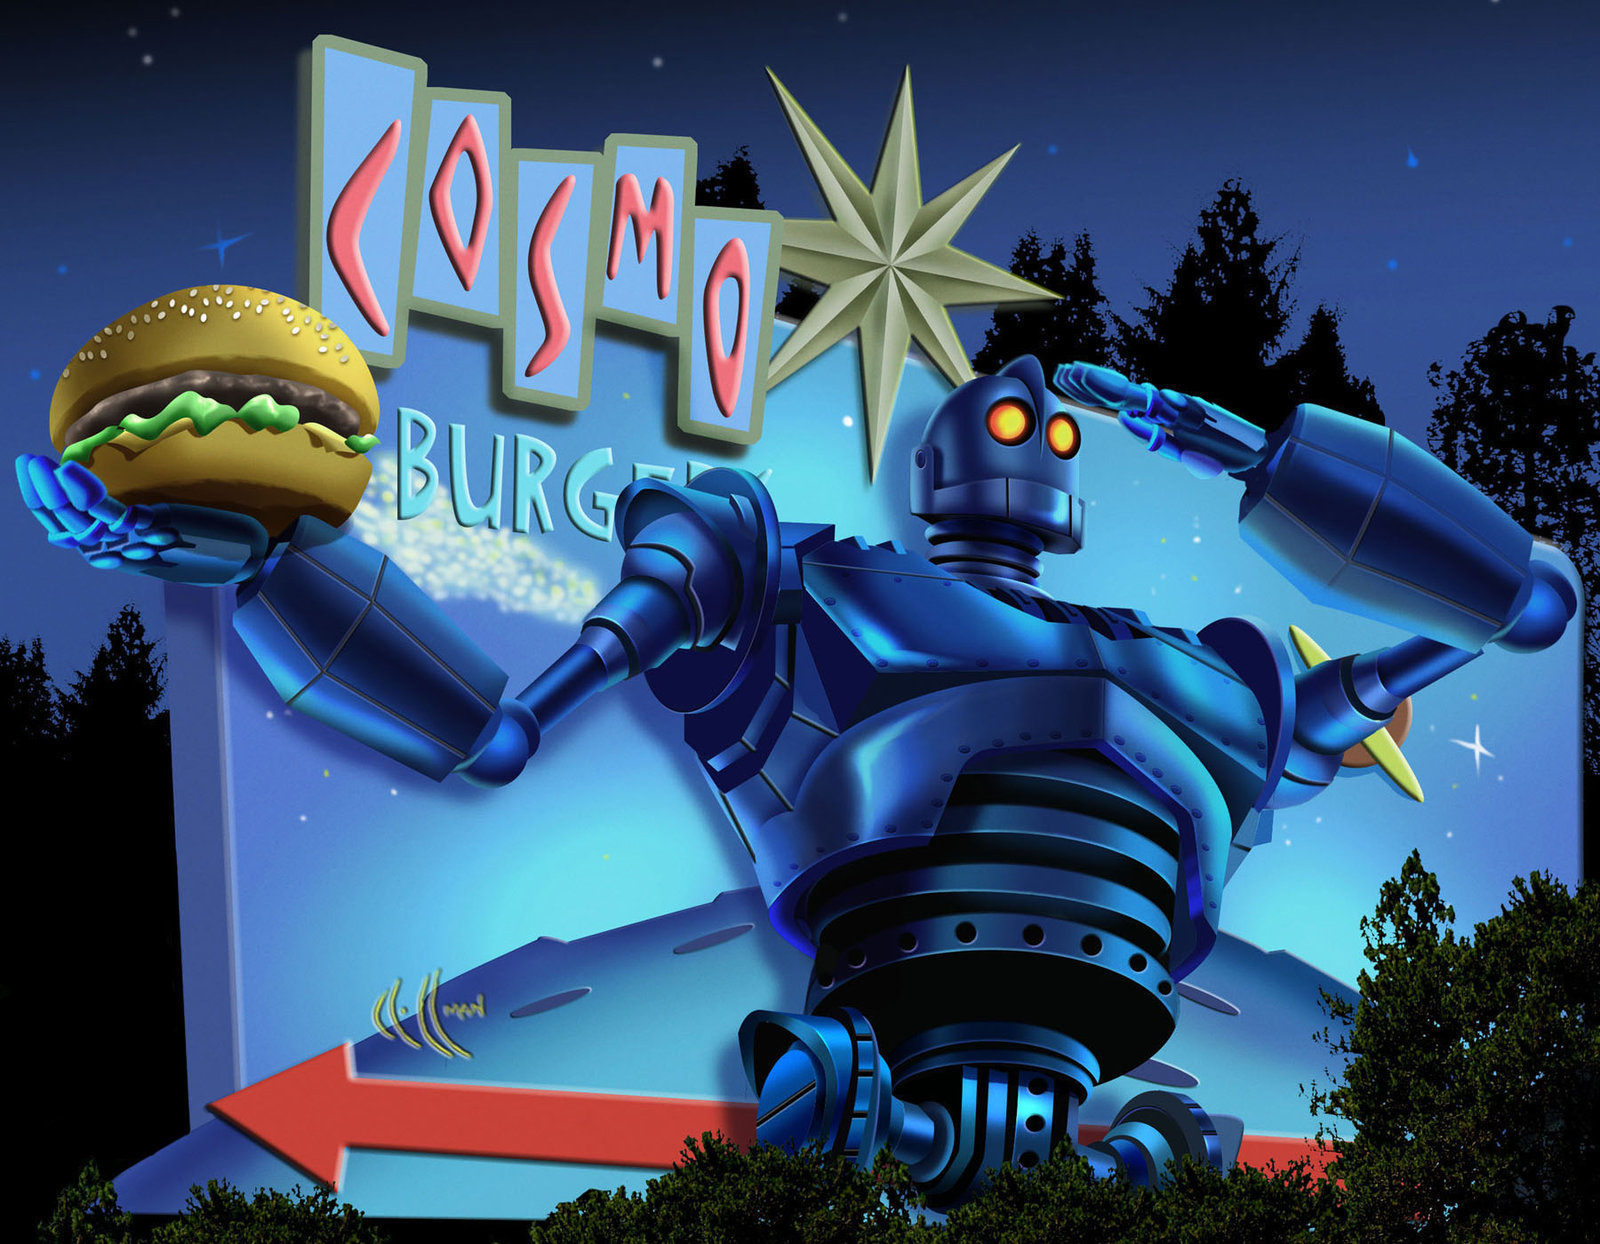 image The iron giant 2 sexlife of suburbs